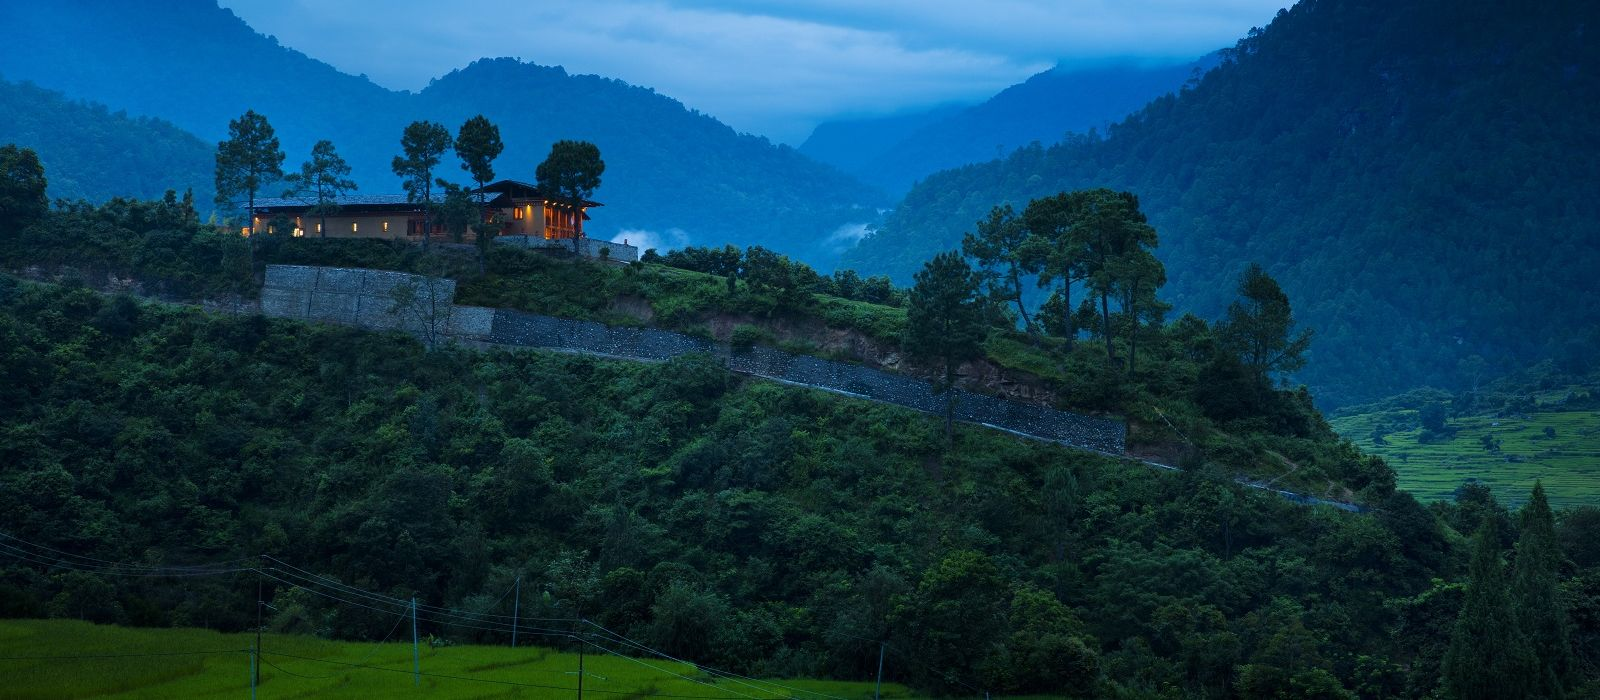 Luxury Bhutan and Thailand Paradise Islands Tour Trip 7